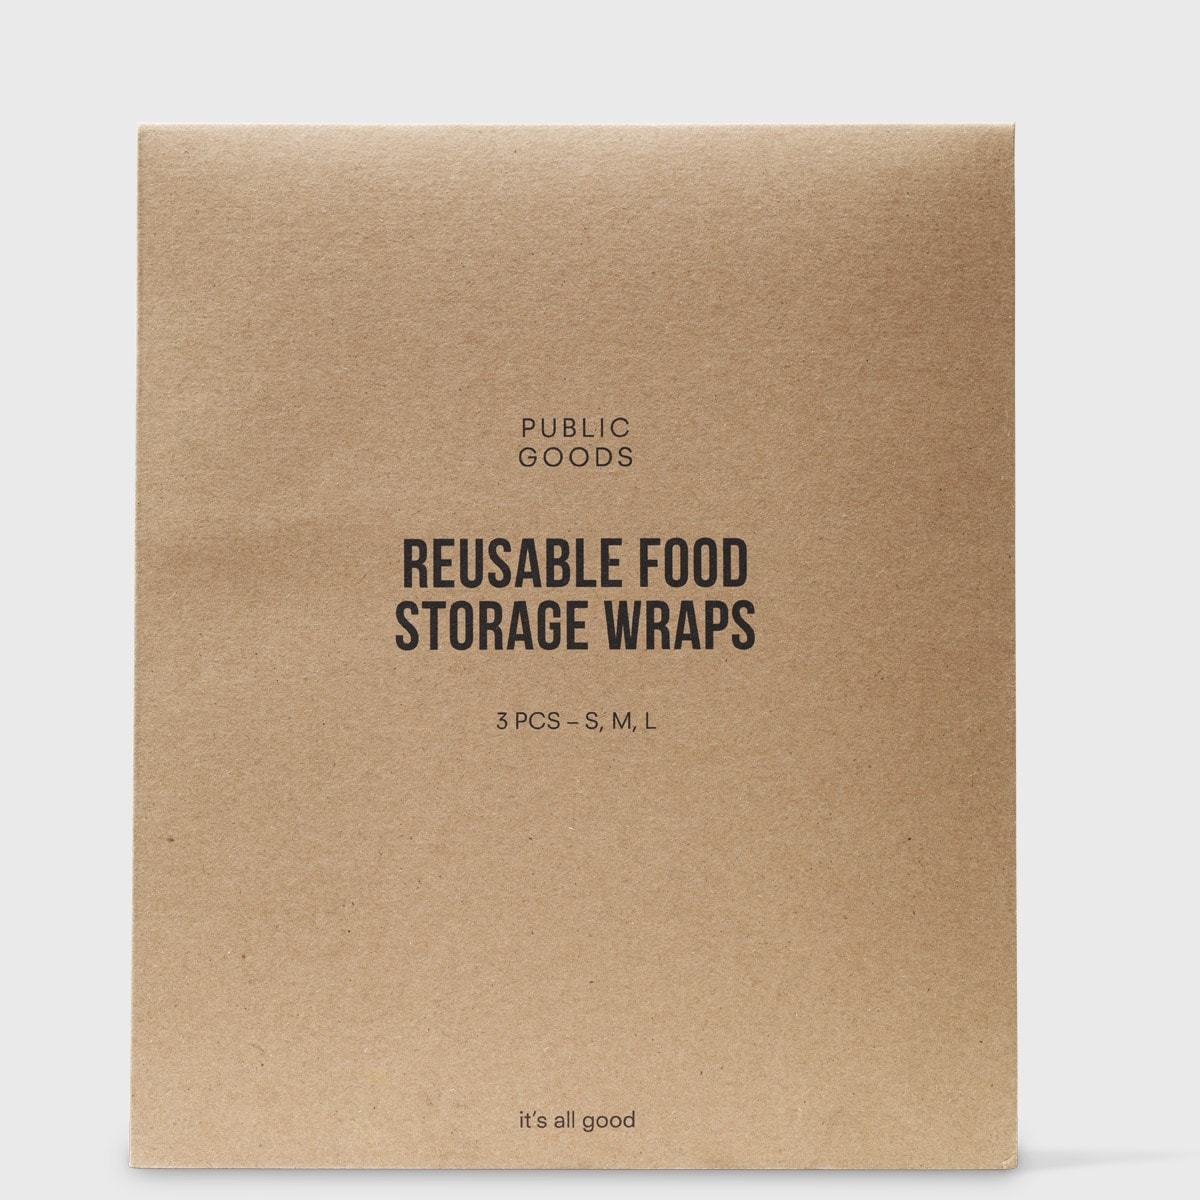 Public Goods Household Reusable Food Storage Wraps